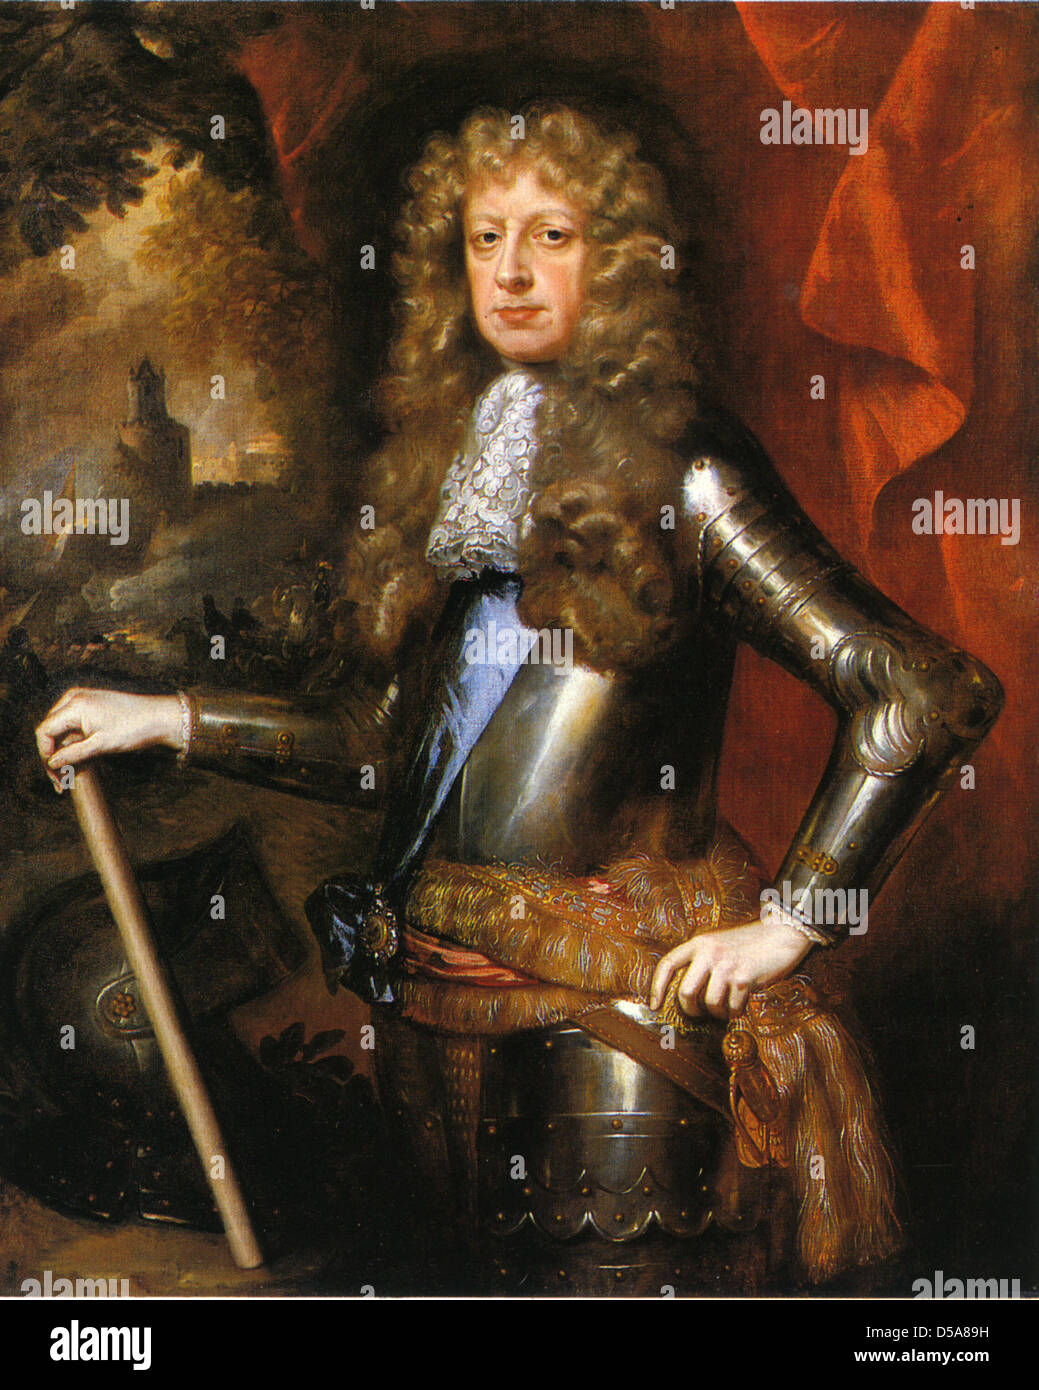 JAMES BUTLER, 1st Duke of Ormonde (1610-1688) Anglo-Irish statesmanr painted by William Wissing about 1680 - Stock Image